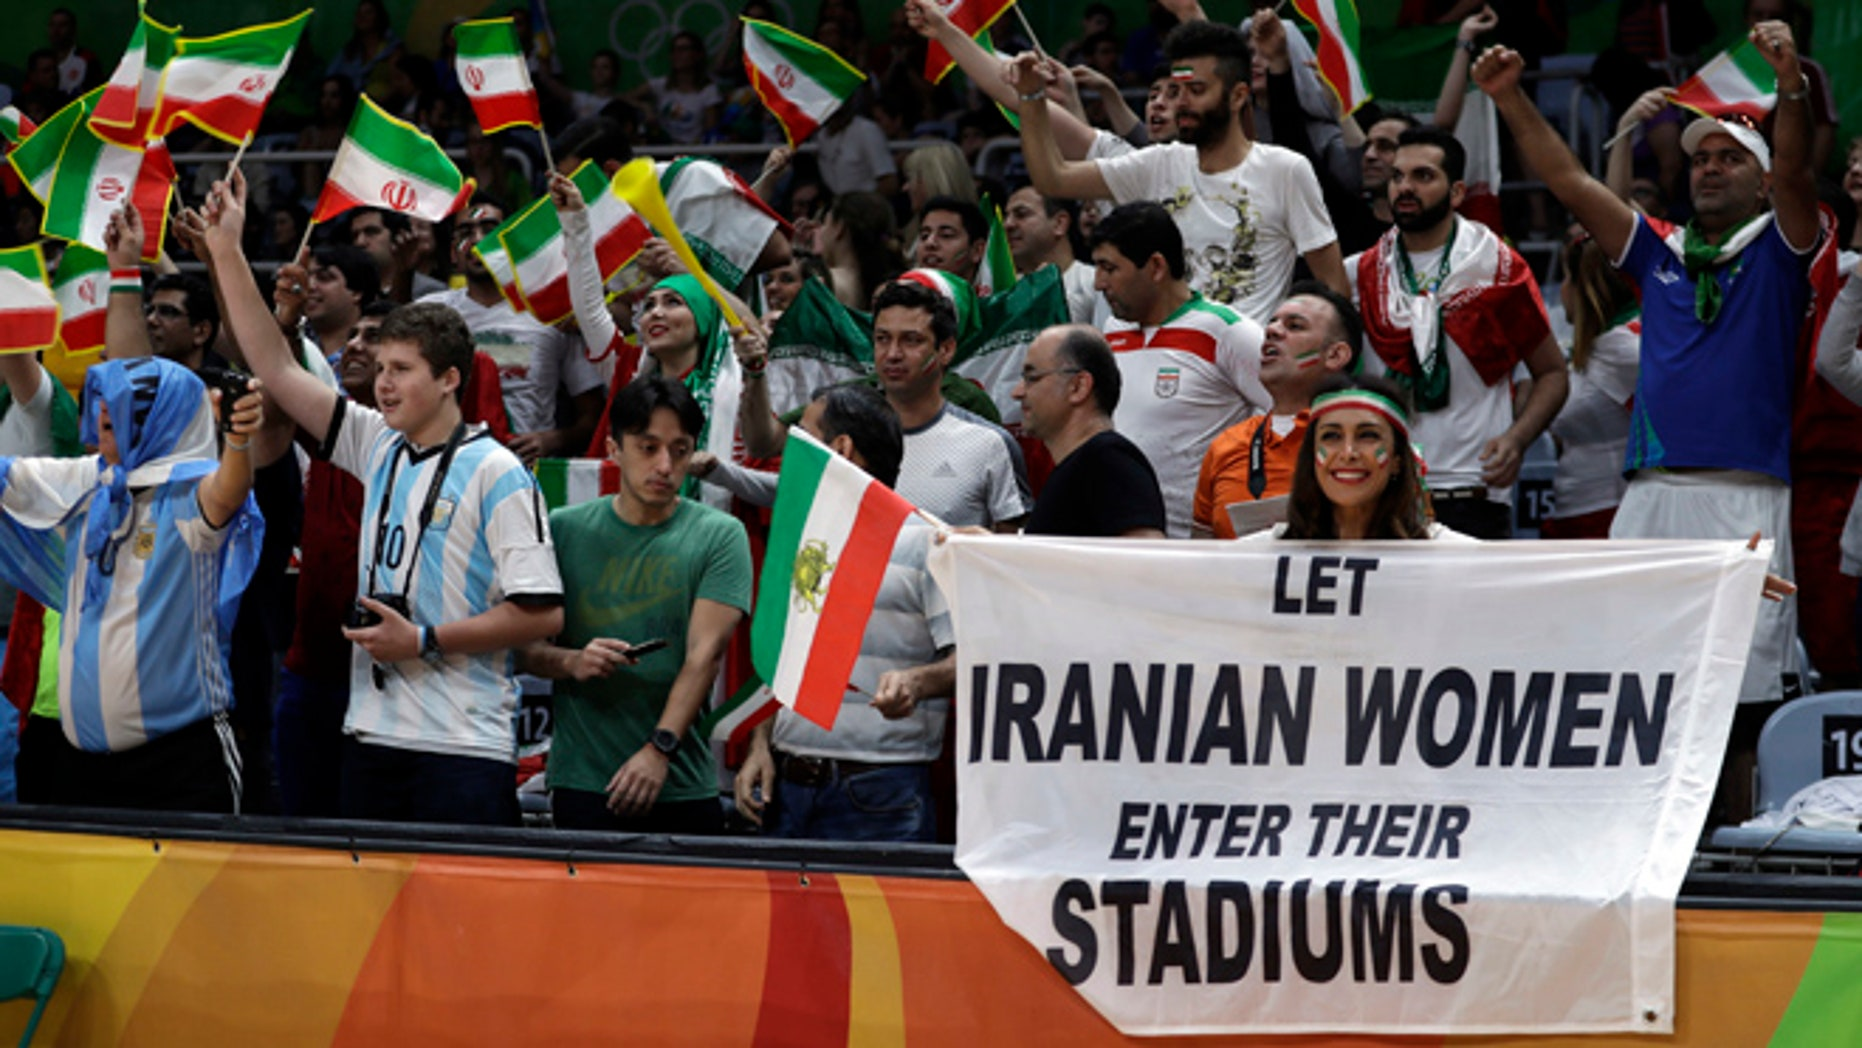 Fans cheer and wave the flag of Iran as Darya Safai, right, holds a large sign protesting the fact that women have not been allowed to attend volleyball matches in Iran during a men's preliminary volleyball match between Egypt and Iran at the 2016 Summer Olympics in Rio de Janeiro, Brazil, Saturday, Aug. 13, 2016.